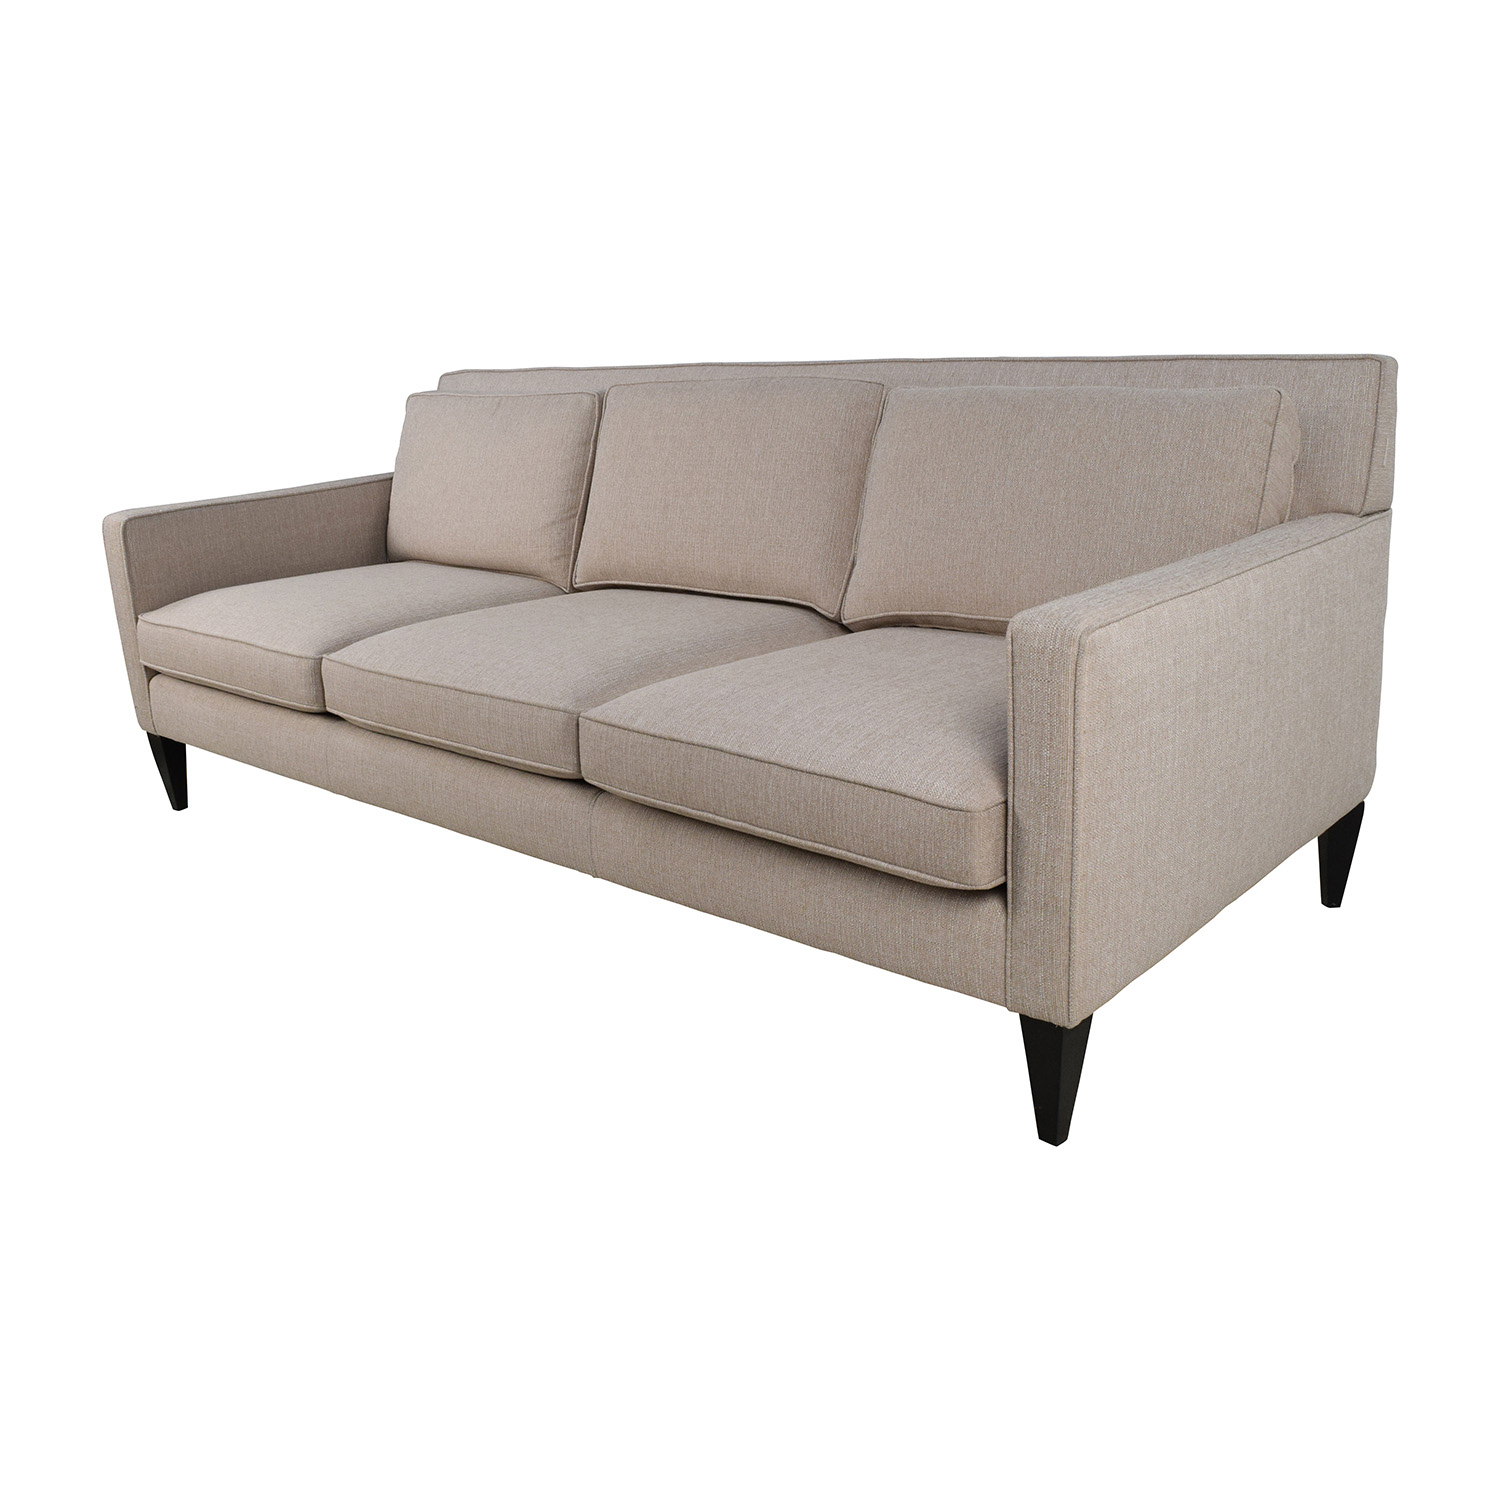 69% off - crate and barrel crate & barrel rochelle desert sofa / sofas